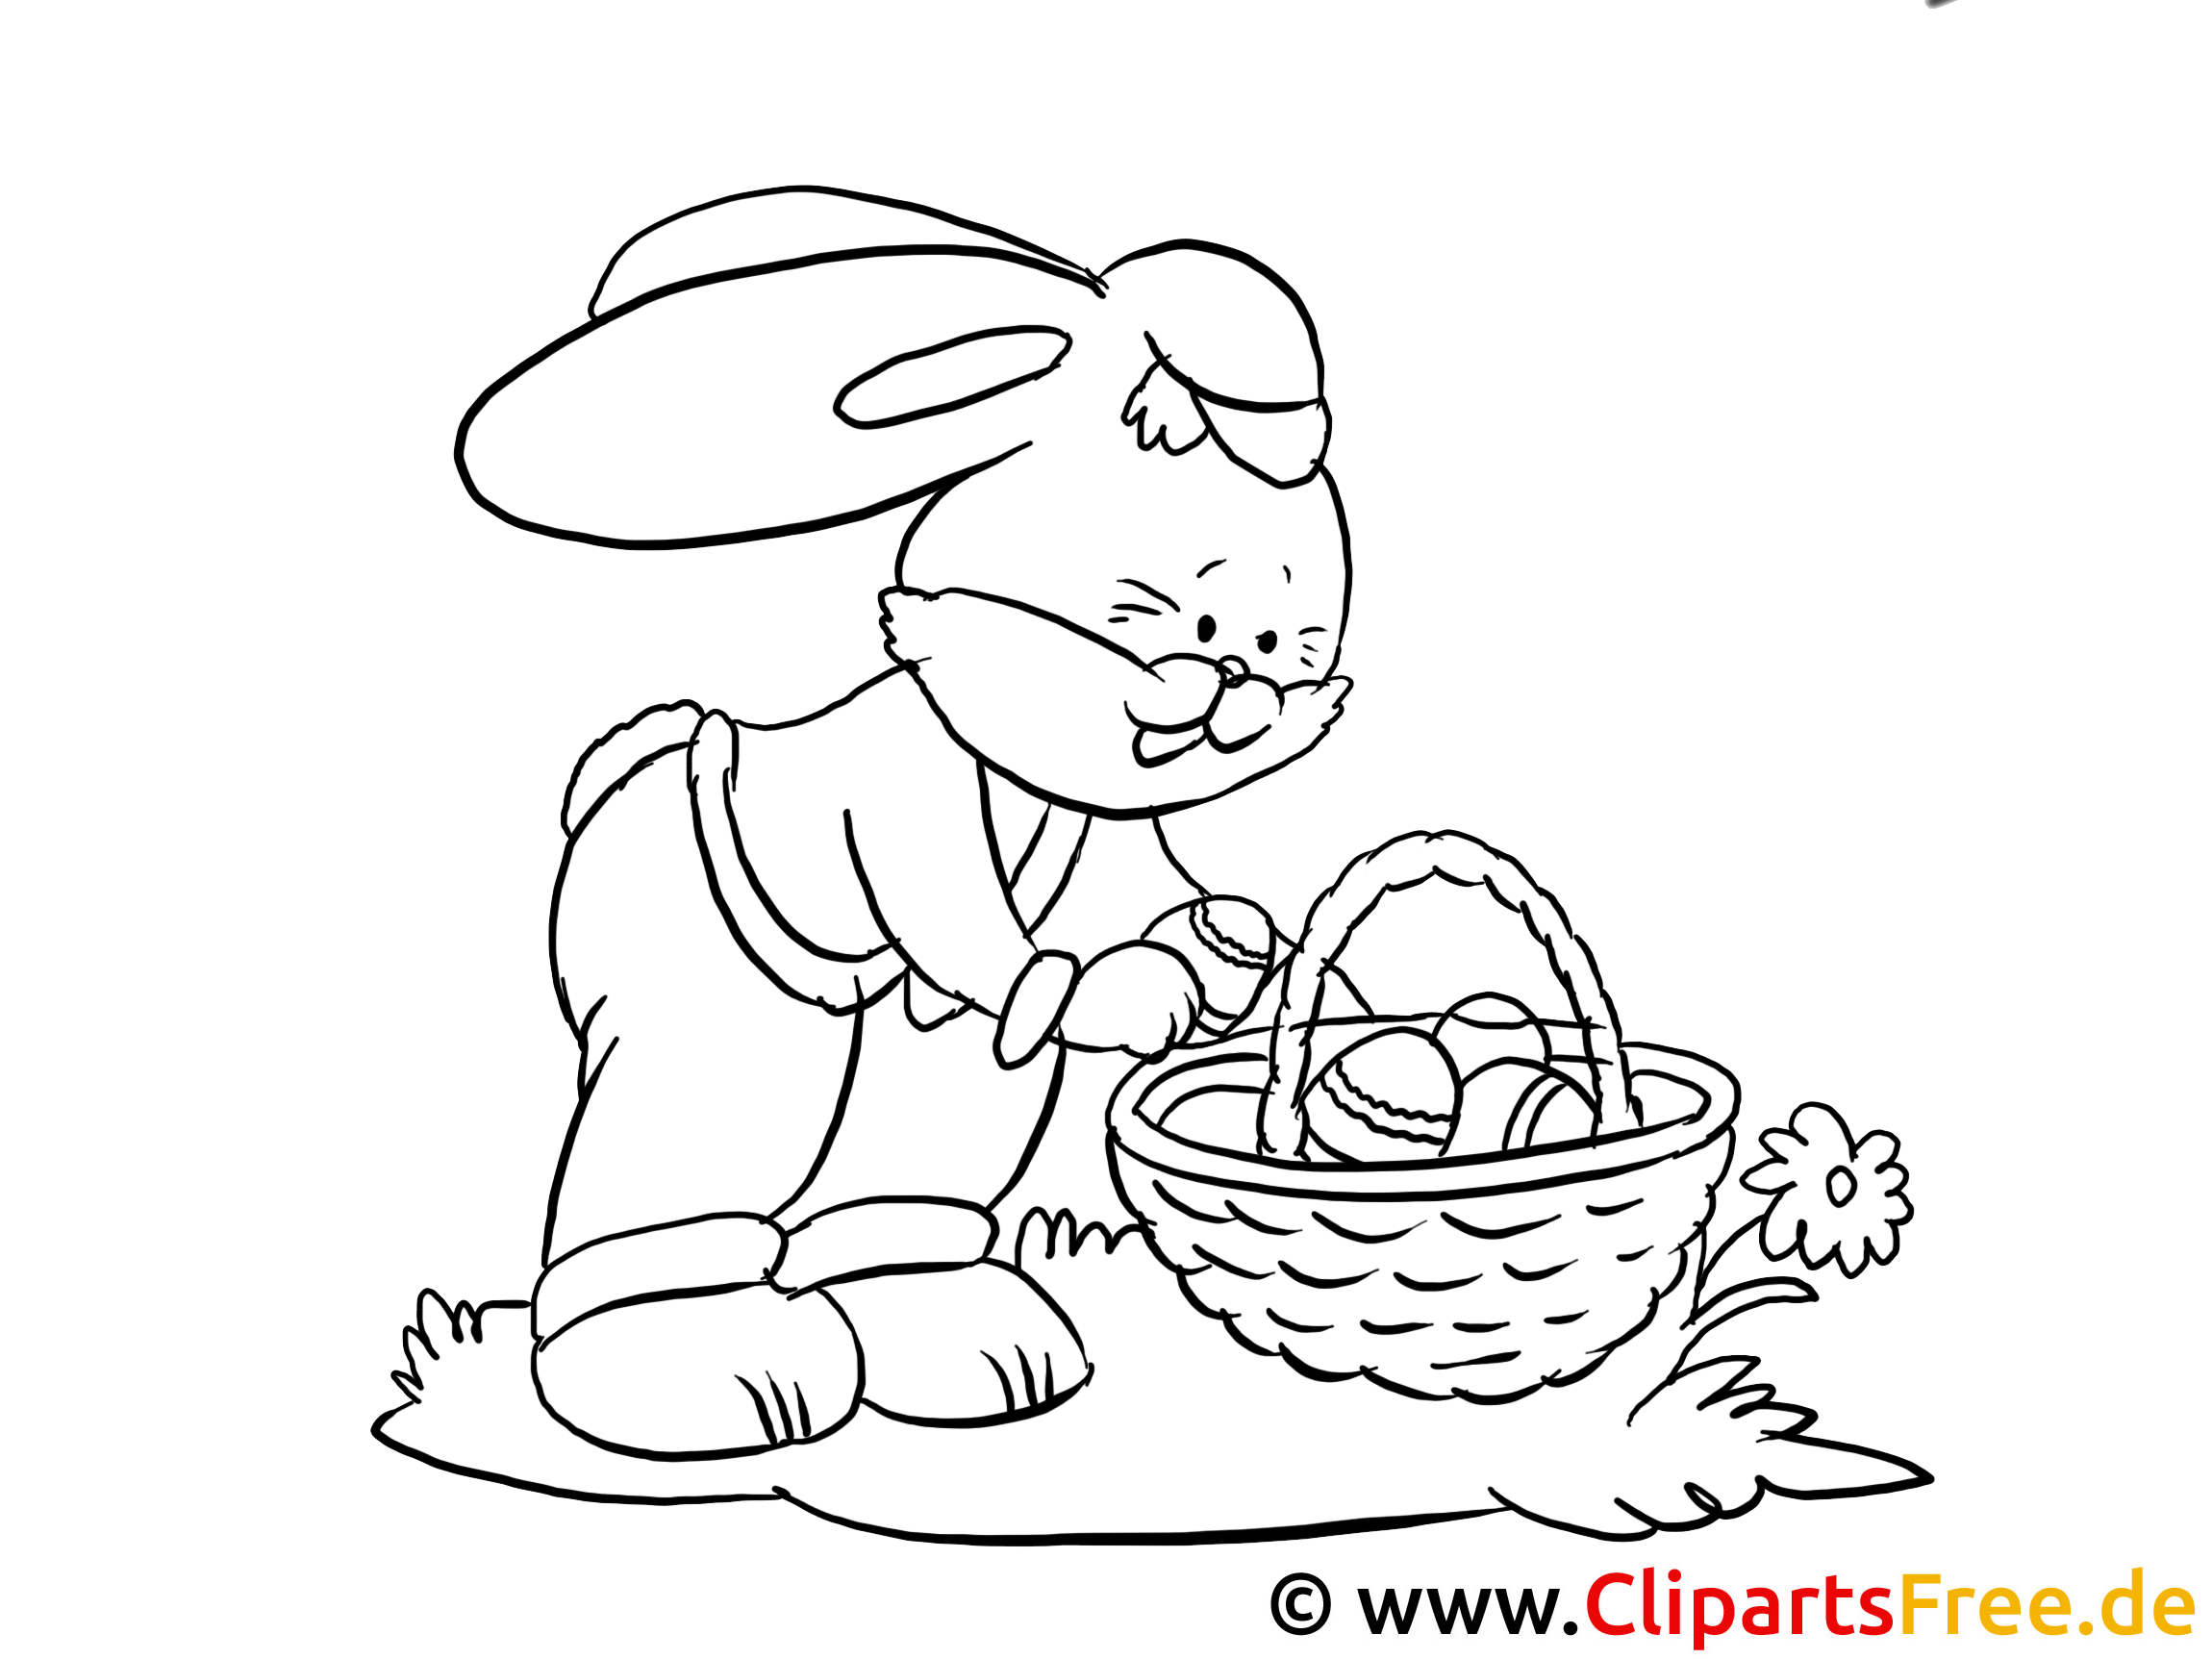 Easter Bunny Coloring Sheet PDF